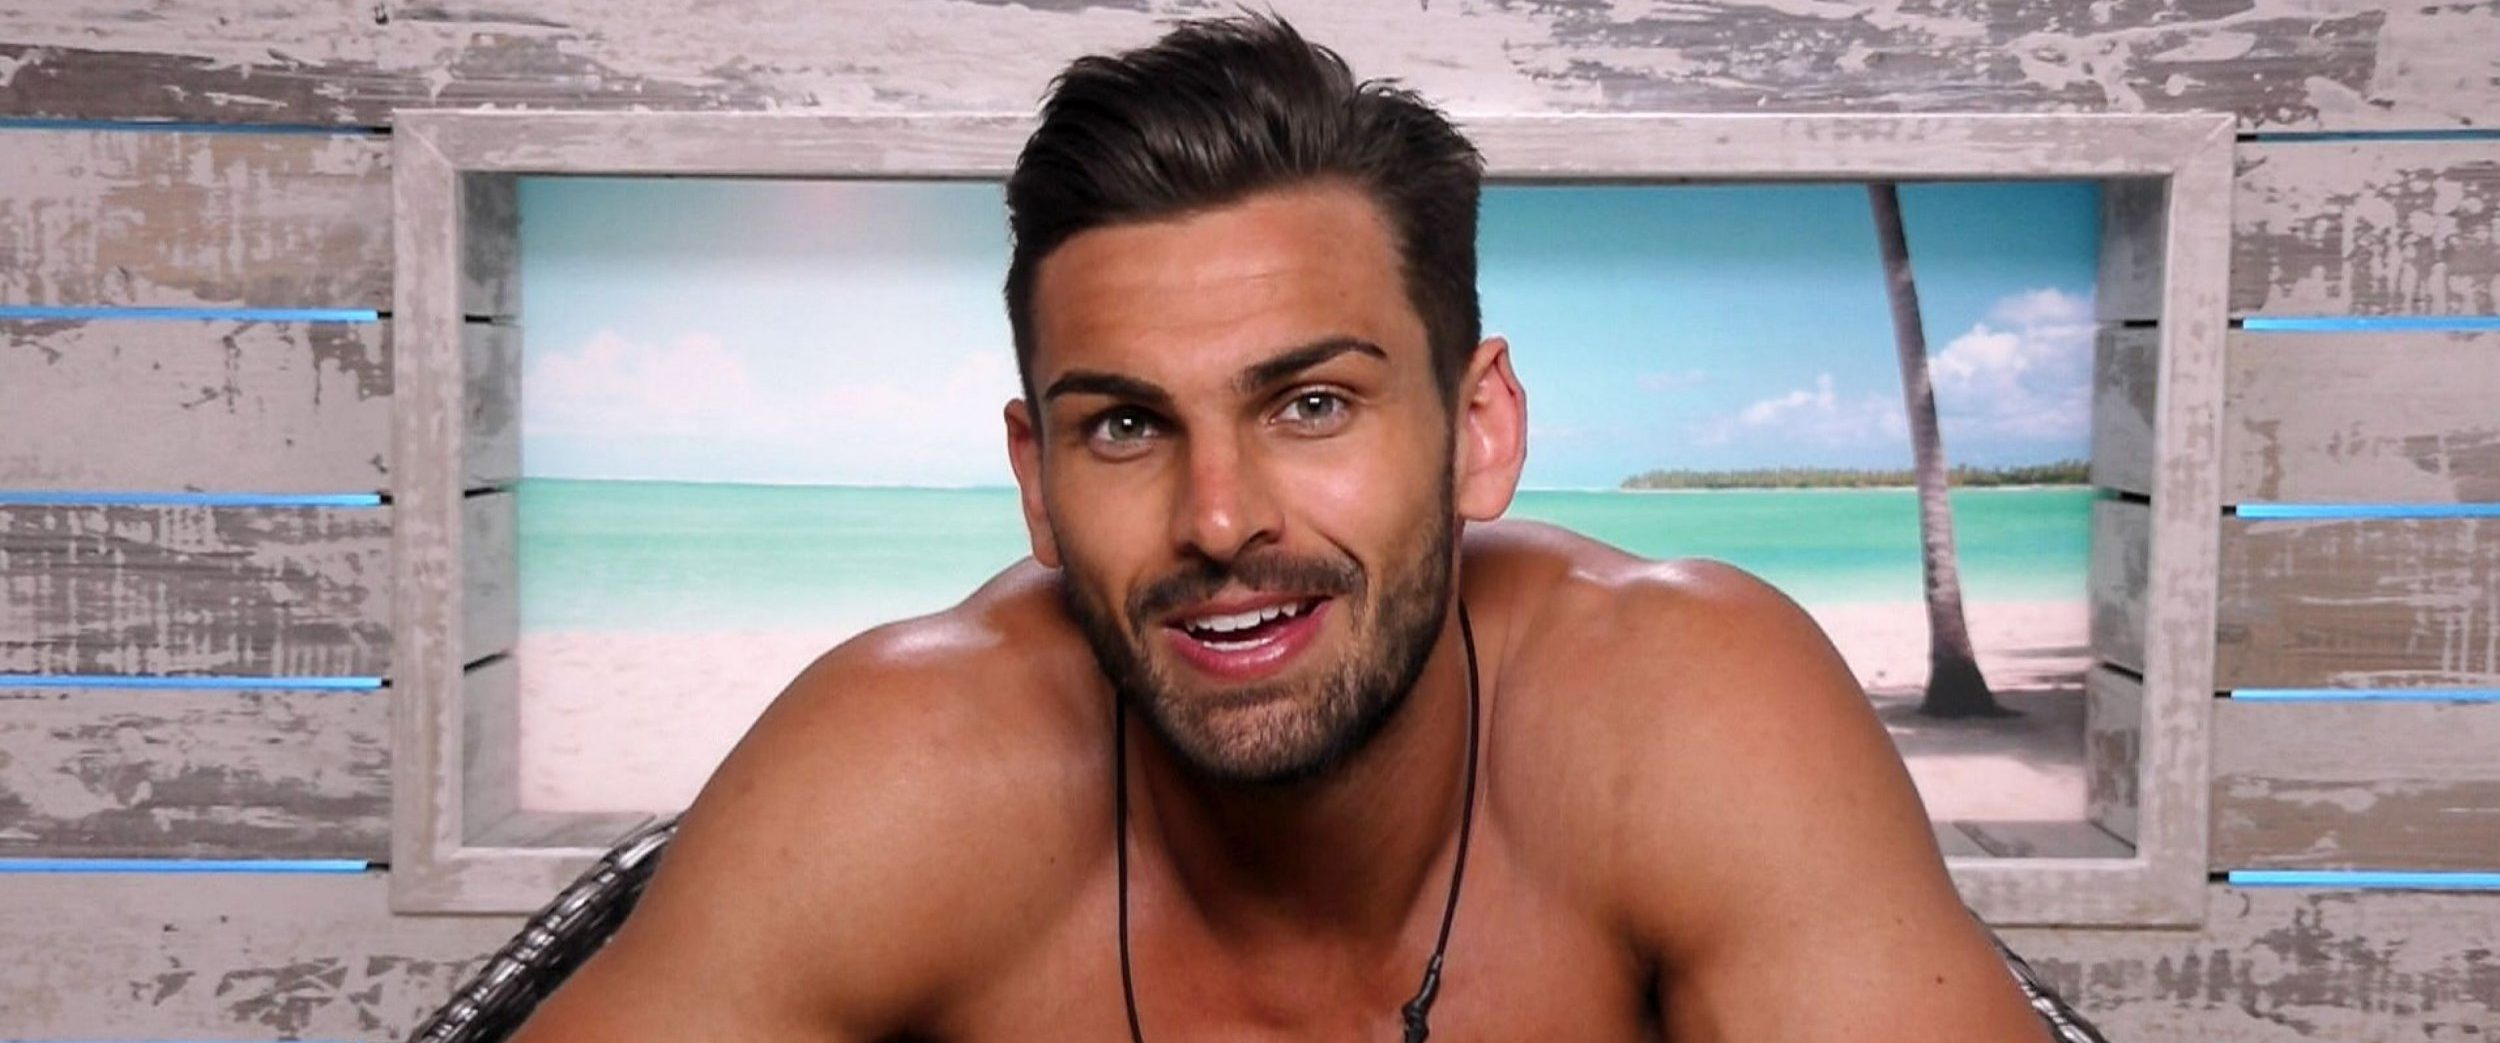 Editorial Use Only. No Merchandising. Mandatory Credit: Photo by ITV/REX/Shutterstock (9700084ae) Adam Collard 'Love Island' TV Show, Series 4, Episode 1, Majorca, Spain - 04 Jun 2018